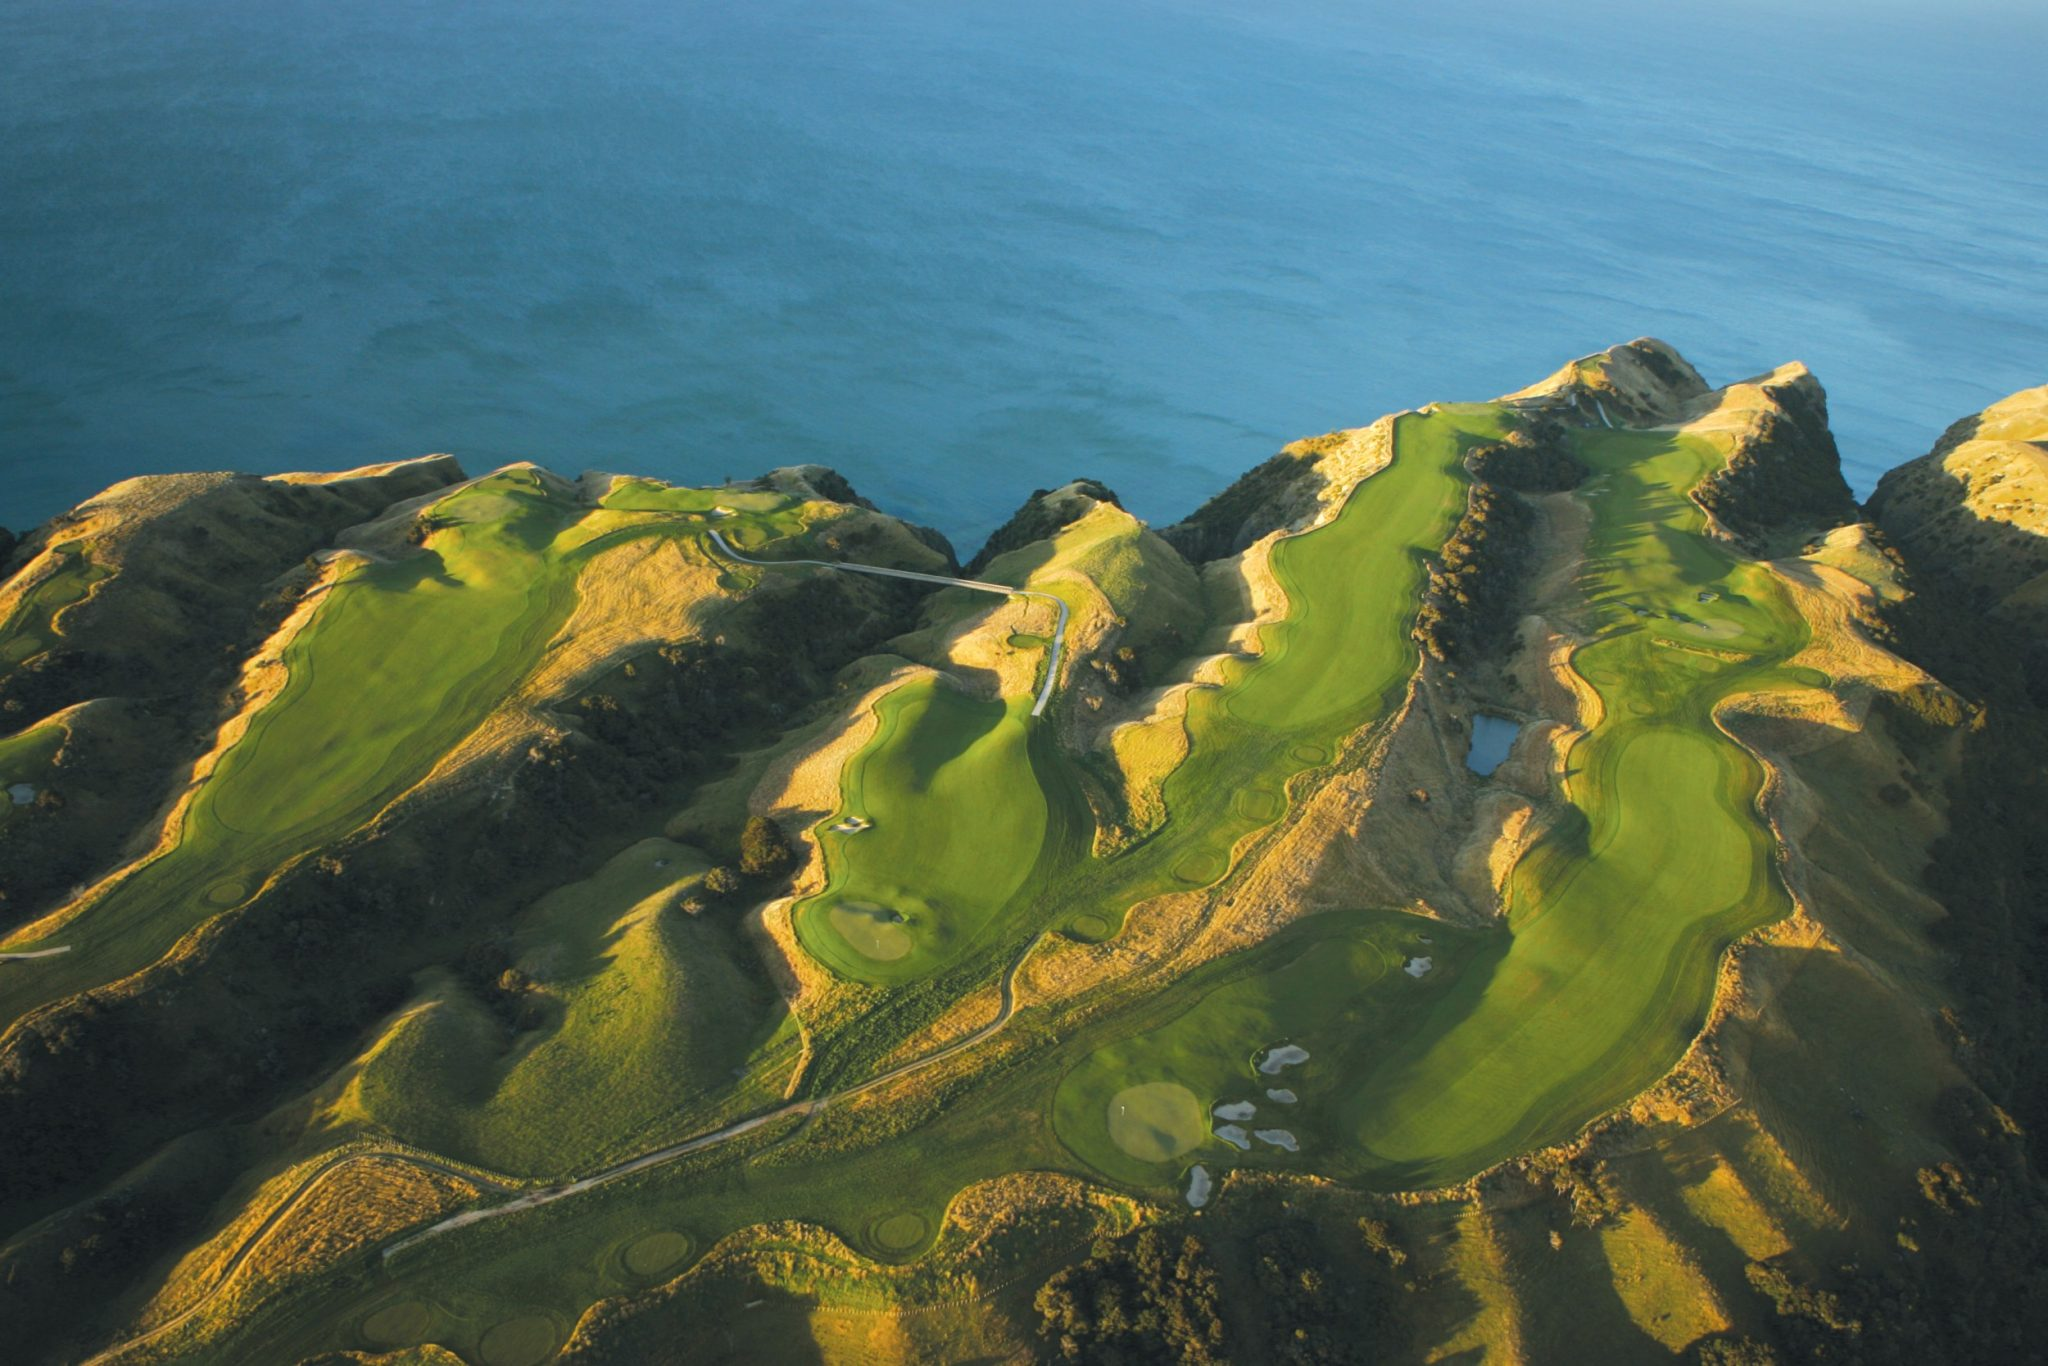 Best Golf Courses - Cape Kidnappers, Hawke's Bay. New Zealand (Photo by David Cannon/Getty Images)